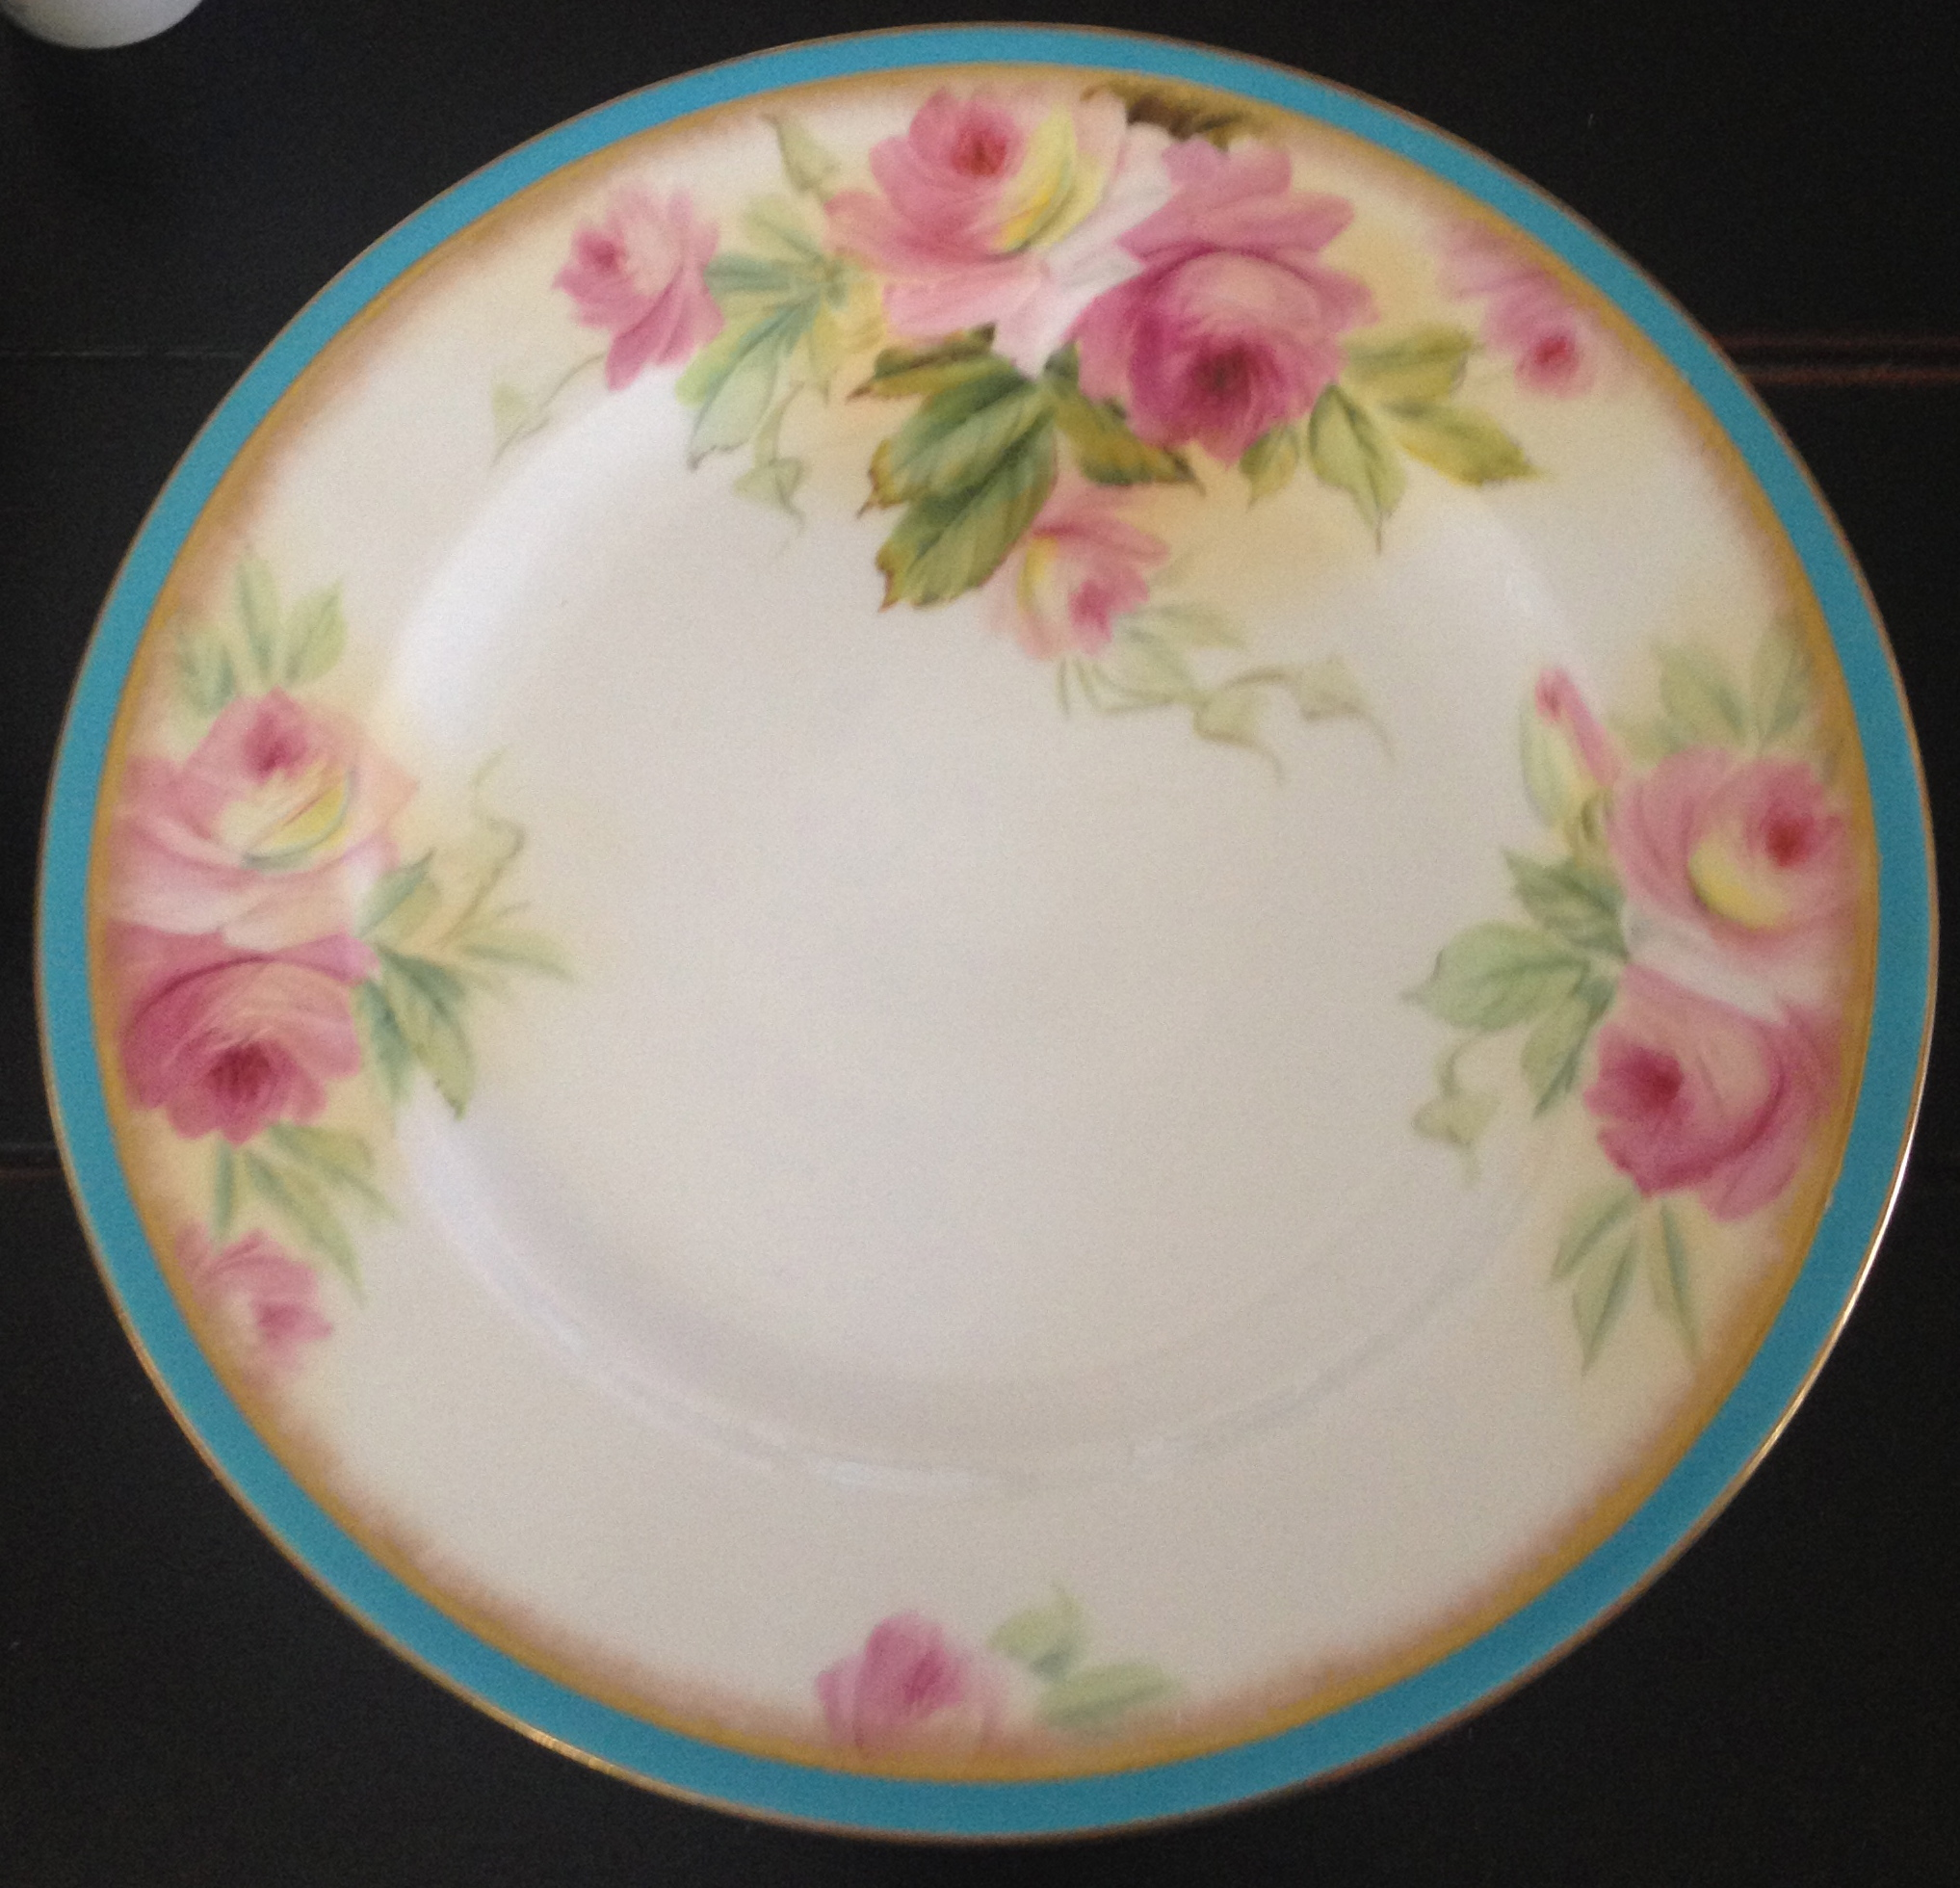 Vintage china with a turquoise and floral pattern.